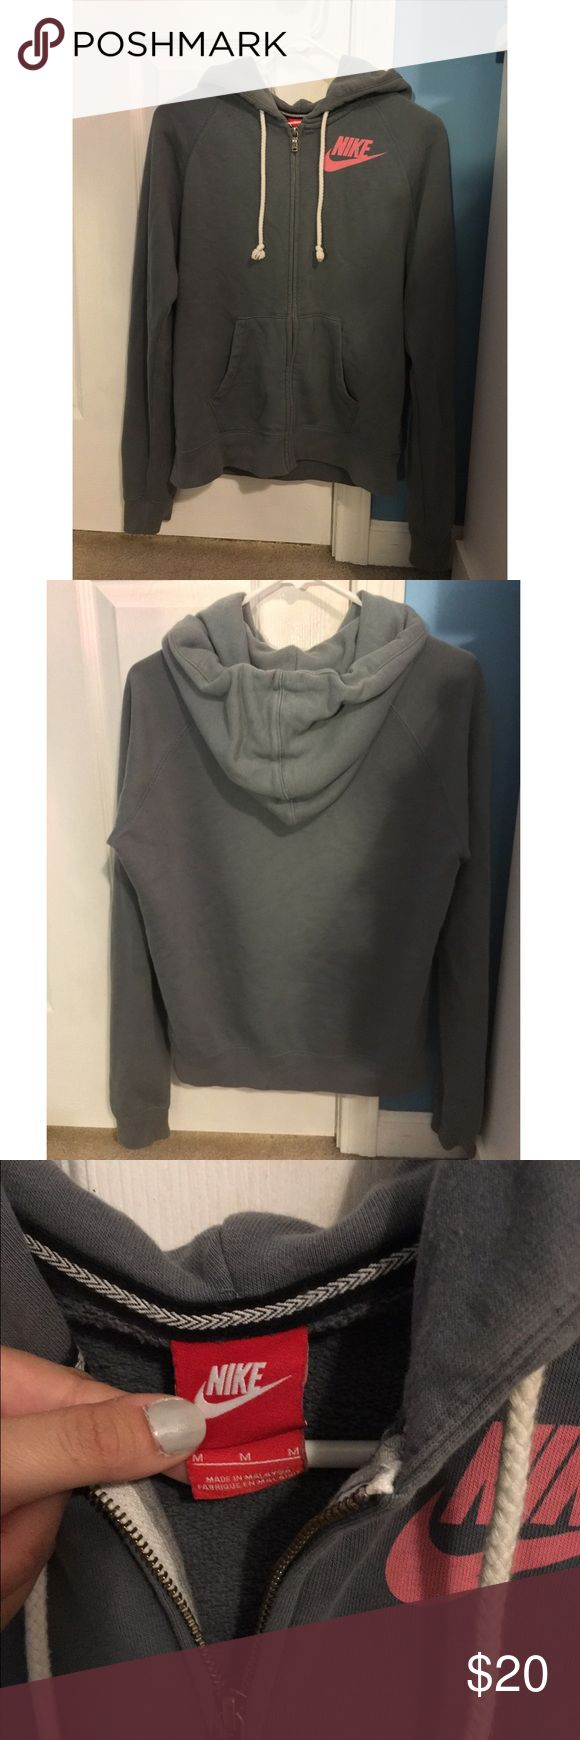 Nike grayish blue zip up hoodie Nike Factory Outlet zip up hoodie  Grayish blue Only worn a few times, the perfect lounge sweater. Women's size medium In very good condition Nike Sweaters